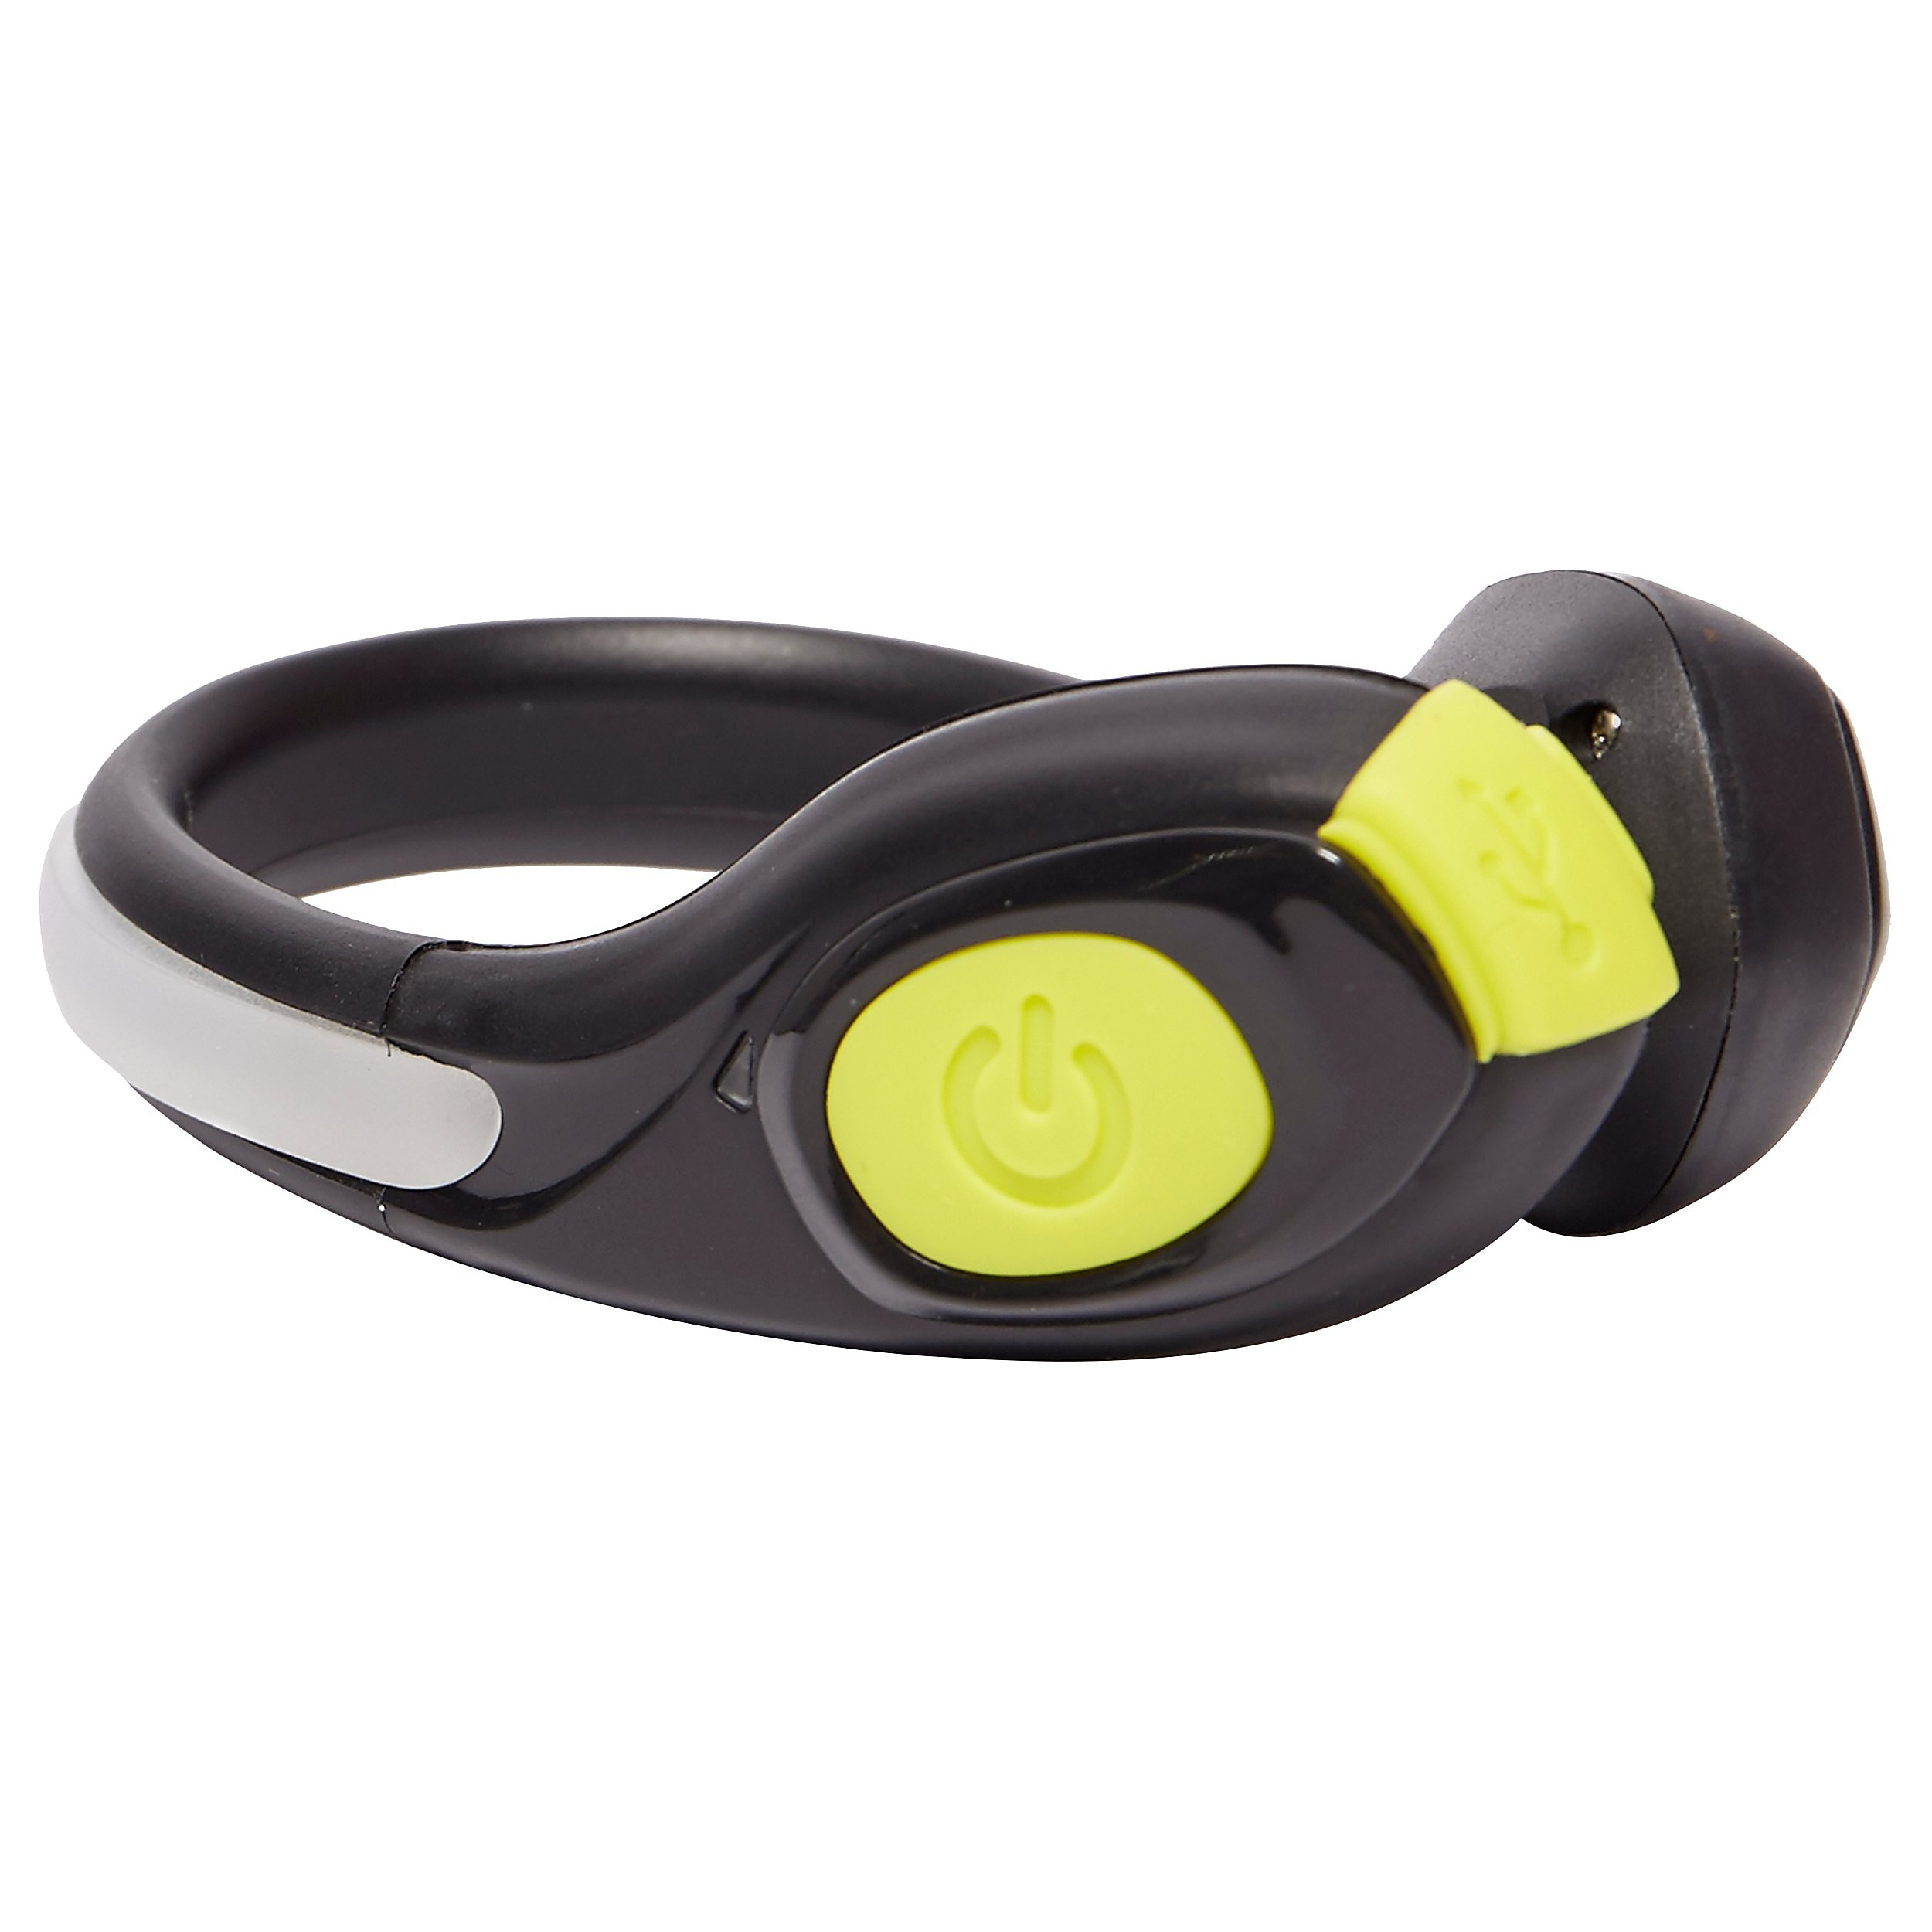 Nathan Sports LightSpur LED Safety Light